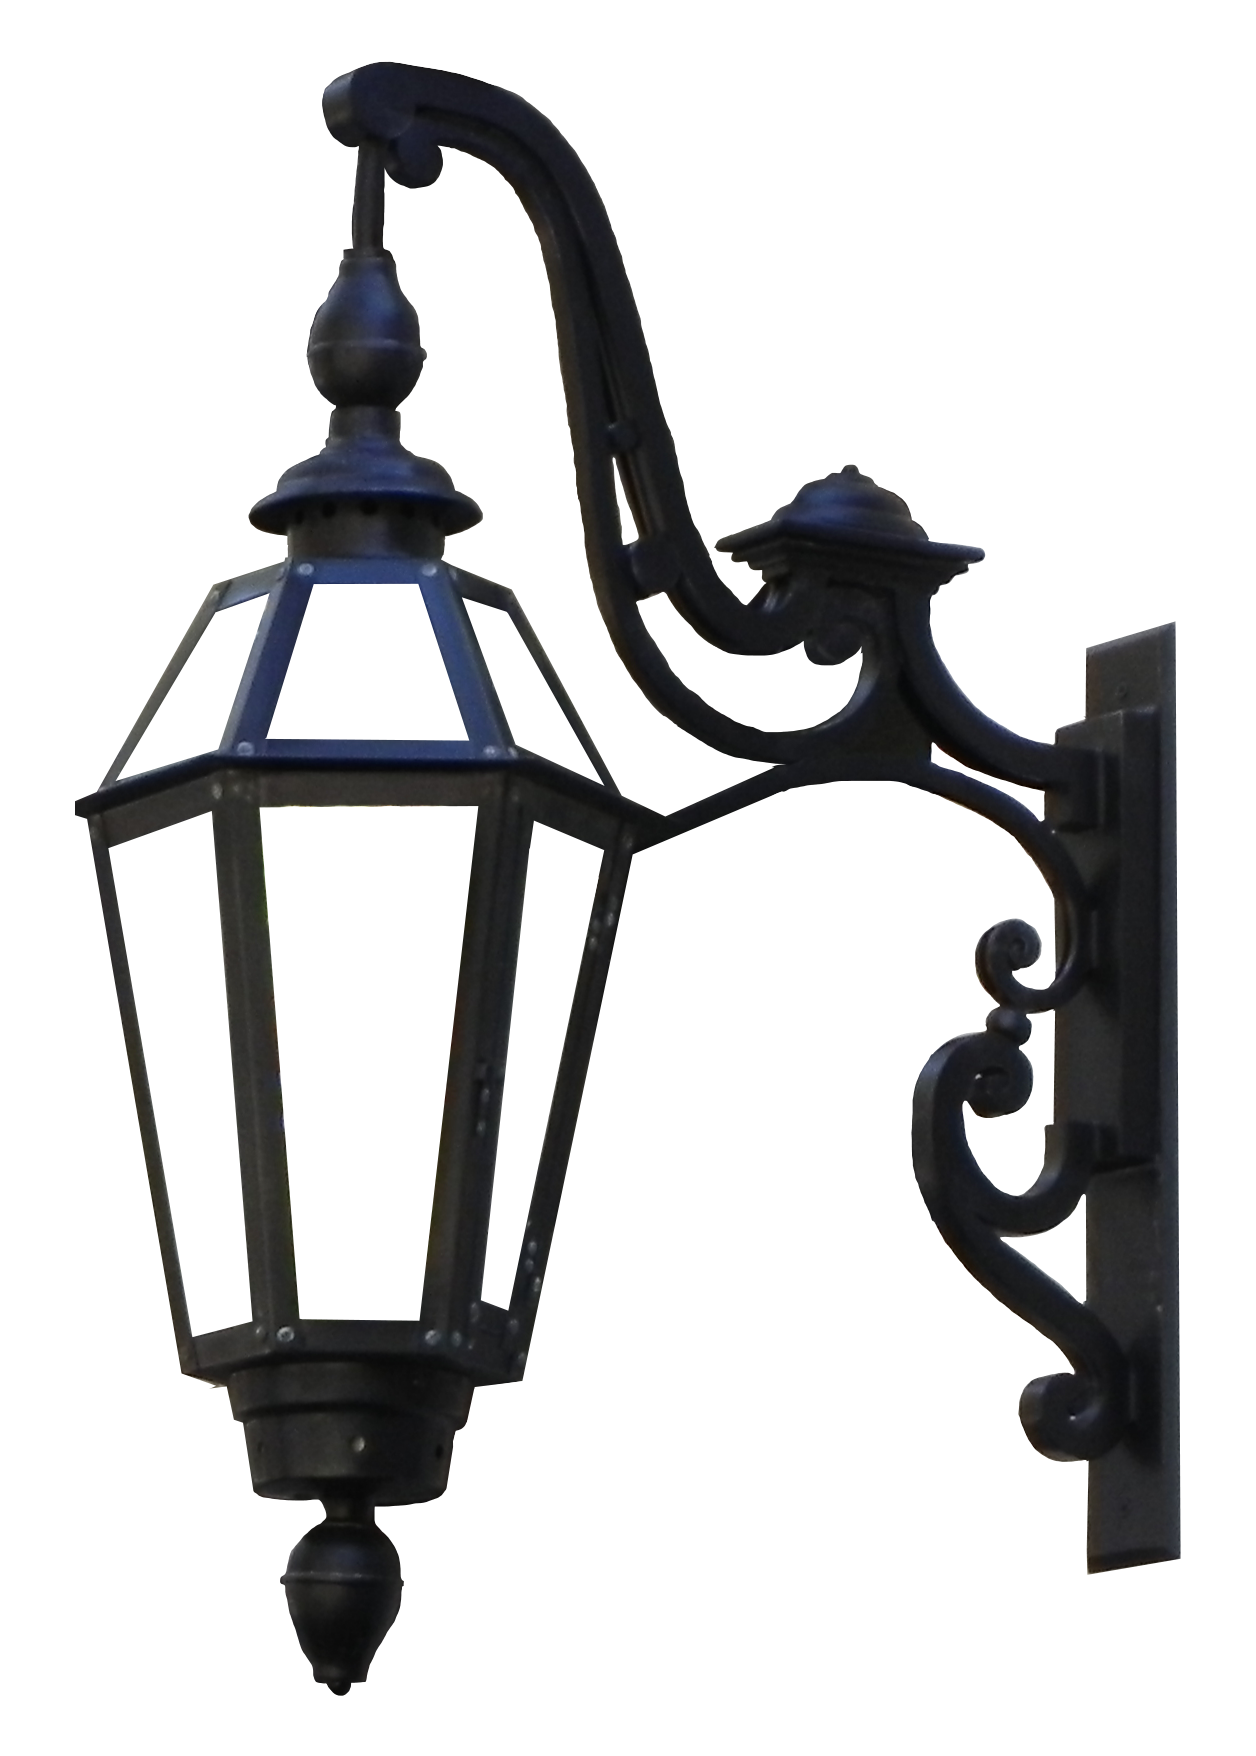 Pin By Mary Mcfarland On Lights Bracket Lamp Outdoor Light Fixtures Outdoor Lighting